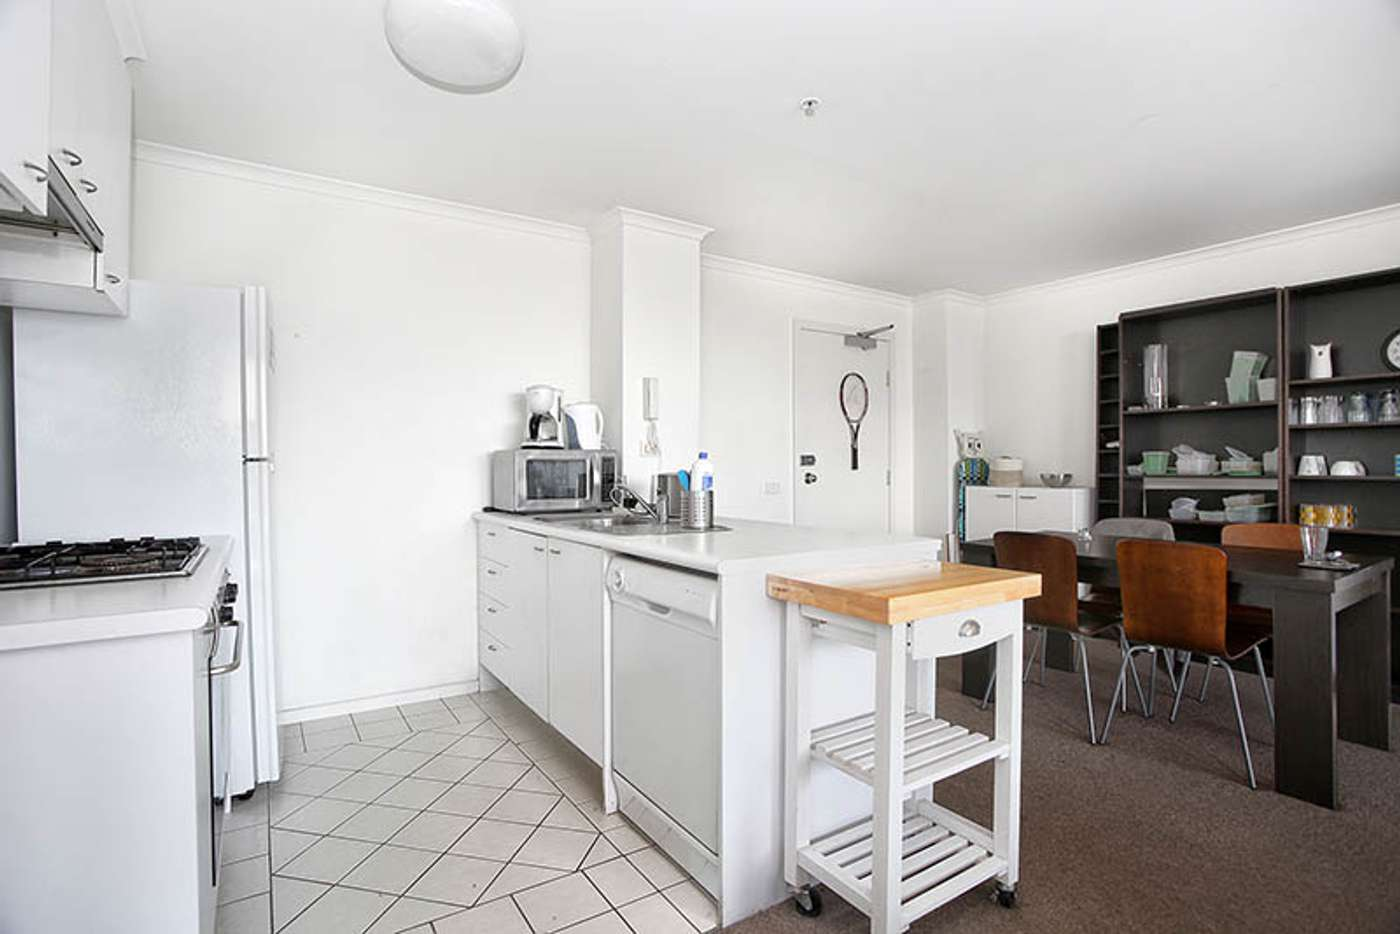 Main view of Homely apartment listing, 167/88 Southbank Boulevard, Southbank VIC 3006